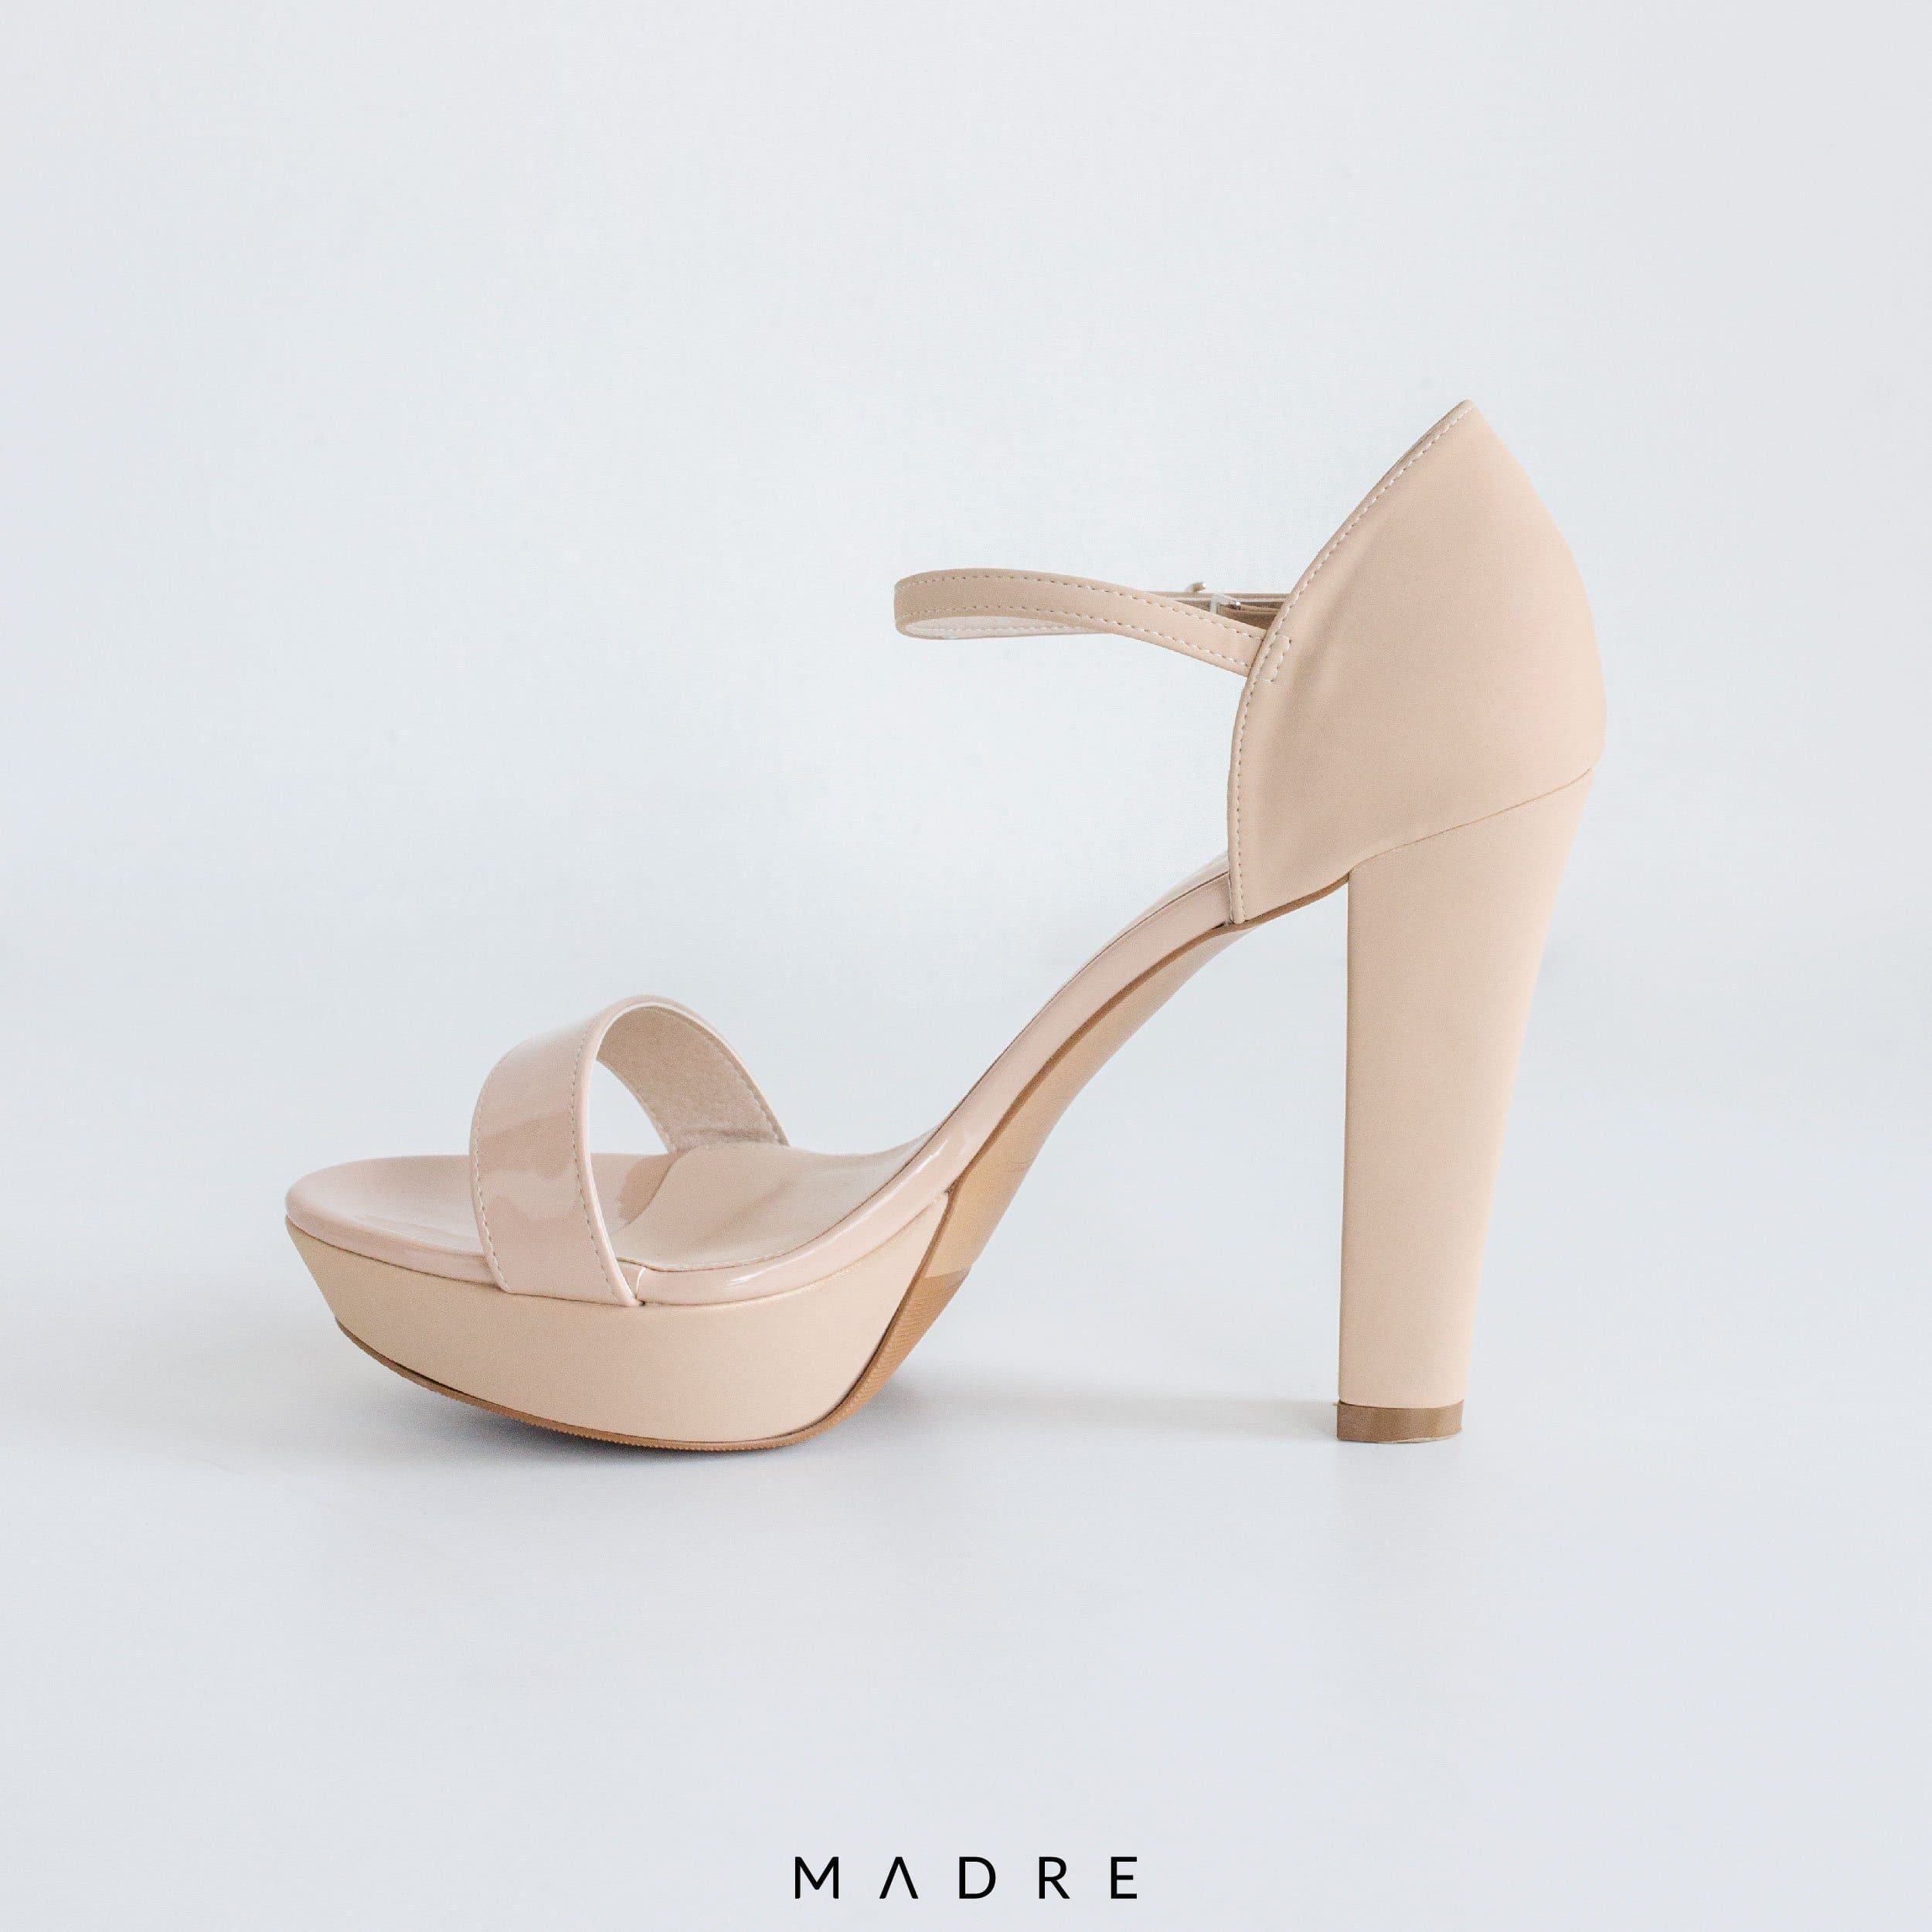 Eldora Block Heels Madre Collection 38 NUDE